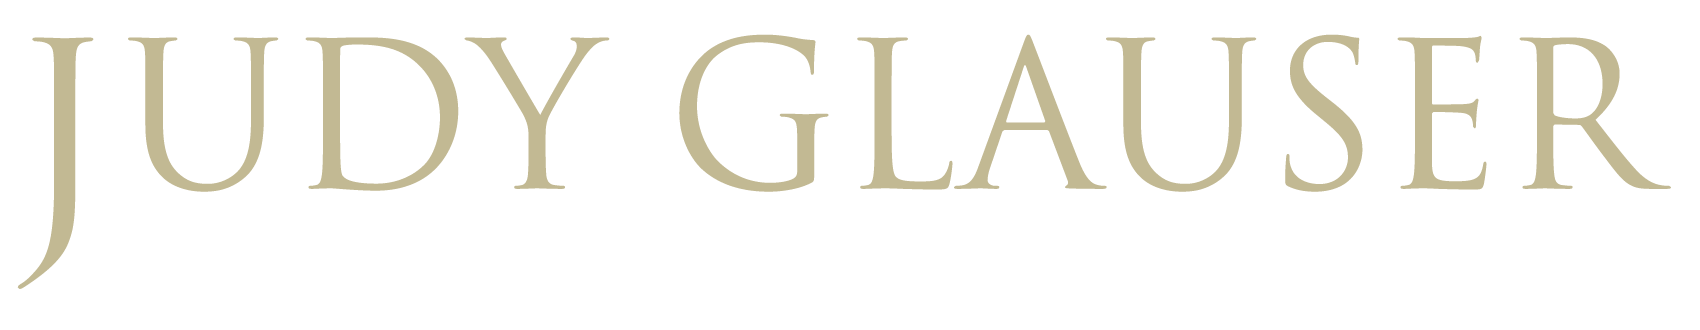 Park City Realestate Experts